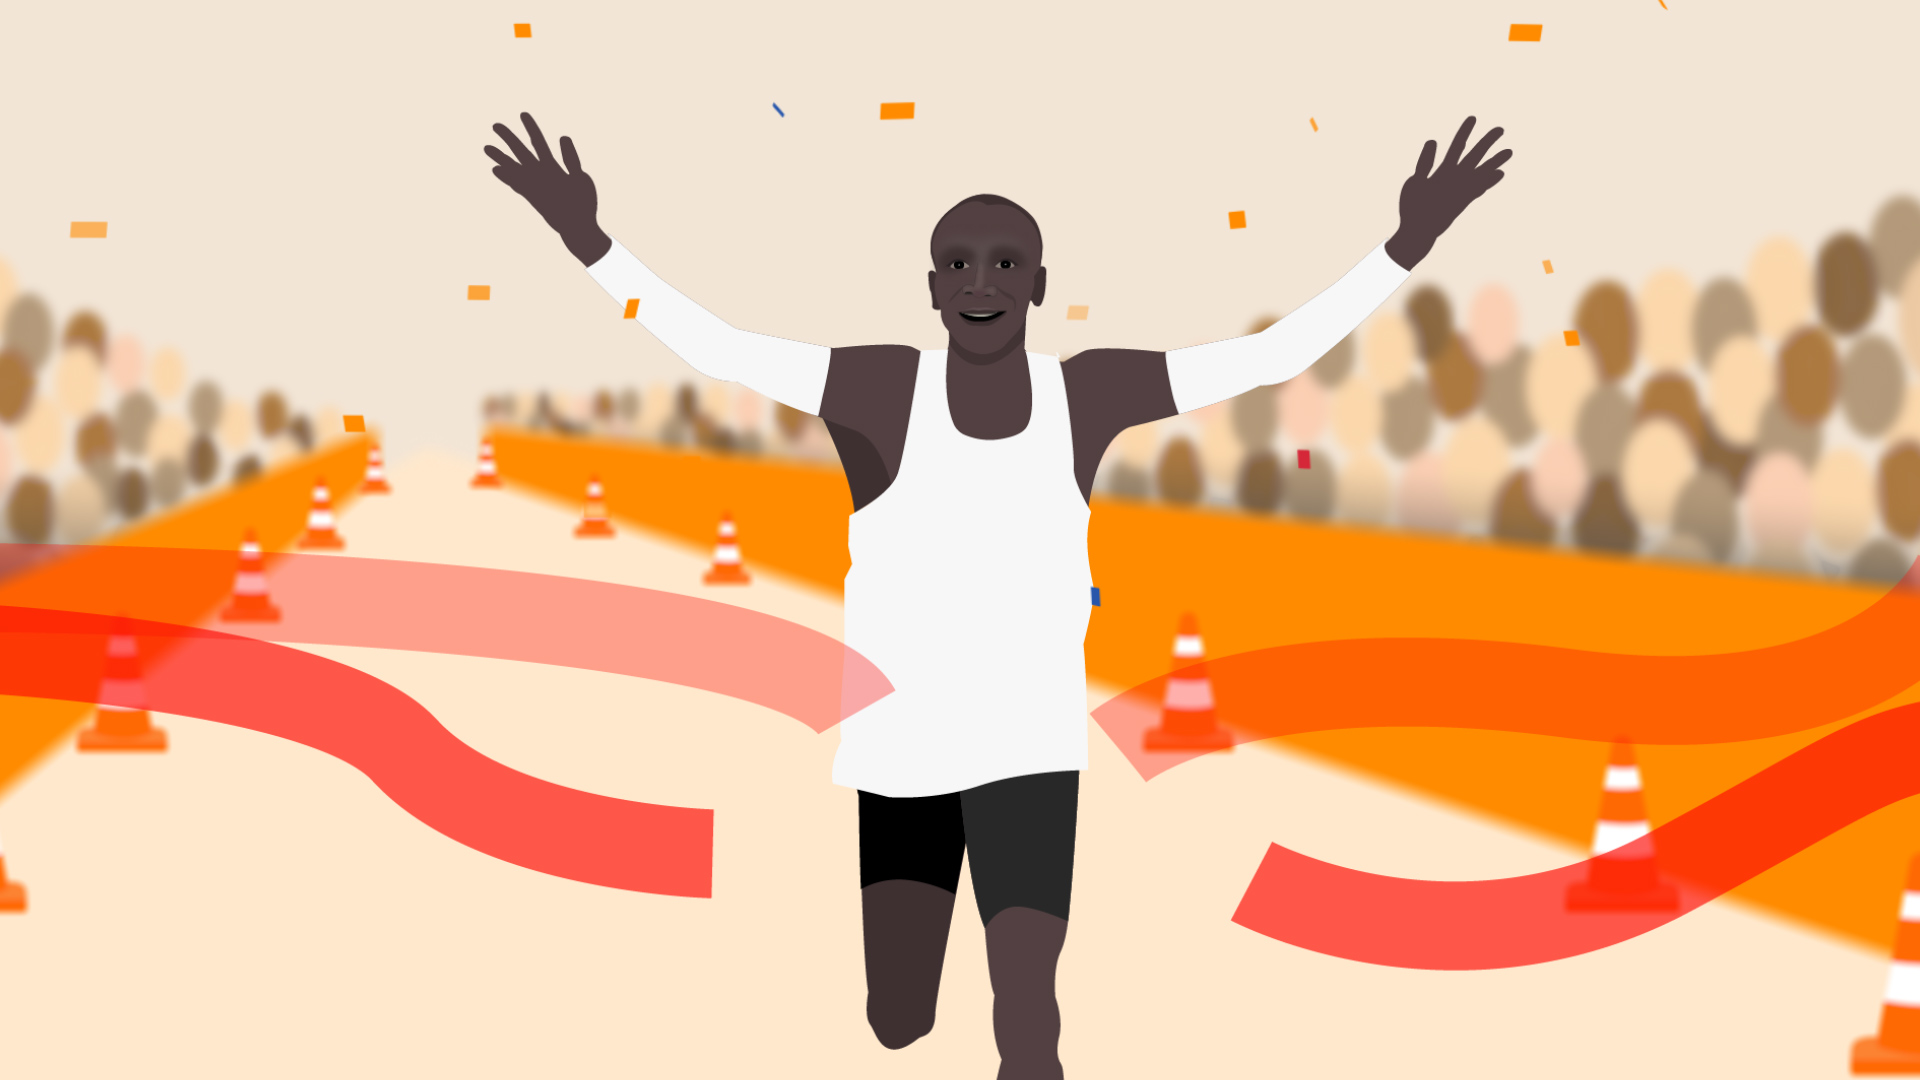 An illustration of long-distance runner Eliud Kipchoge